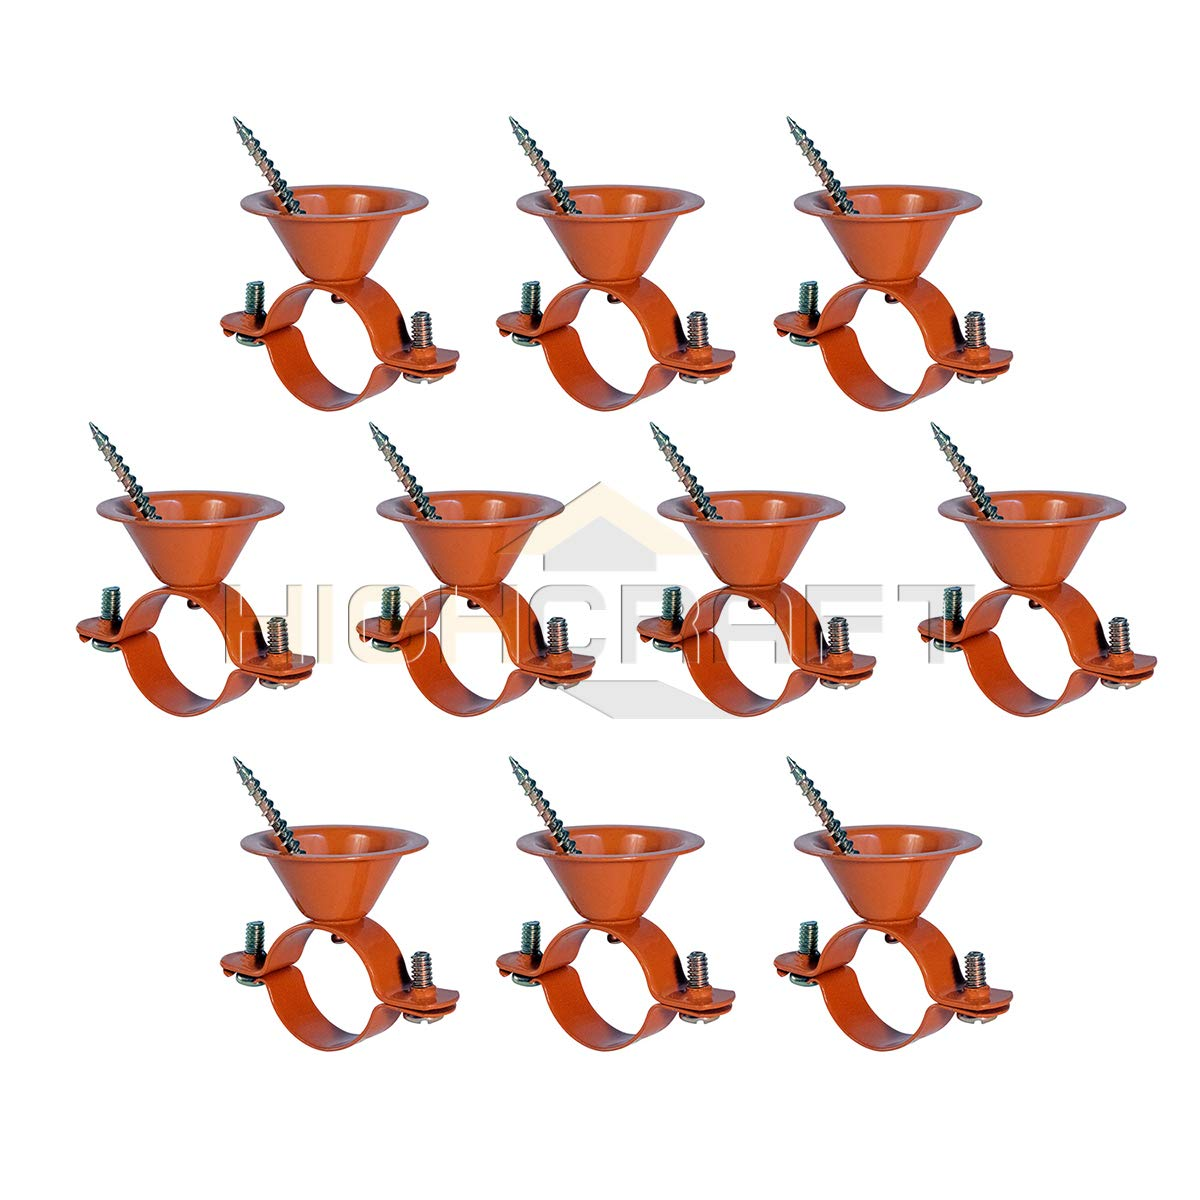 Highcraft HBE-CP34-10 Bell Hanger Copper Coated Steel, 3/4 in. 10 Pack by Highcraft